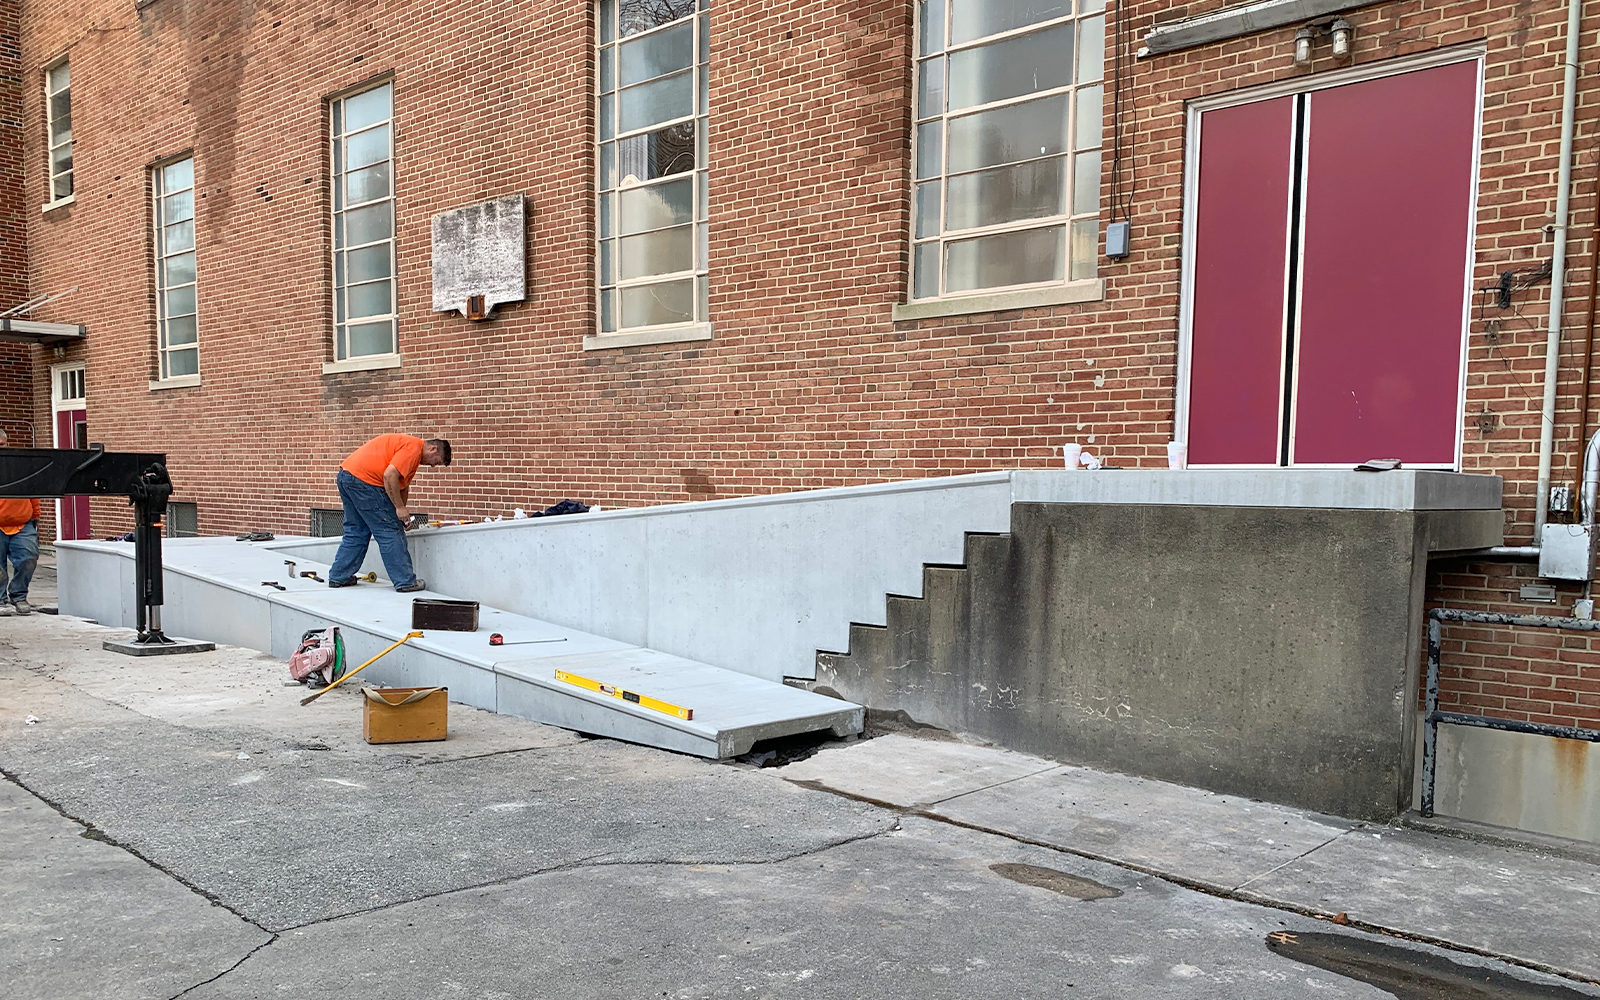 precast-concrete-ramp-installed-over-existing-steps